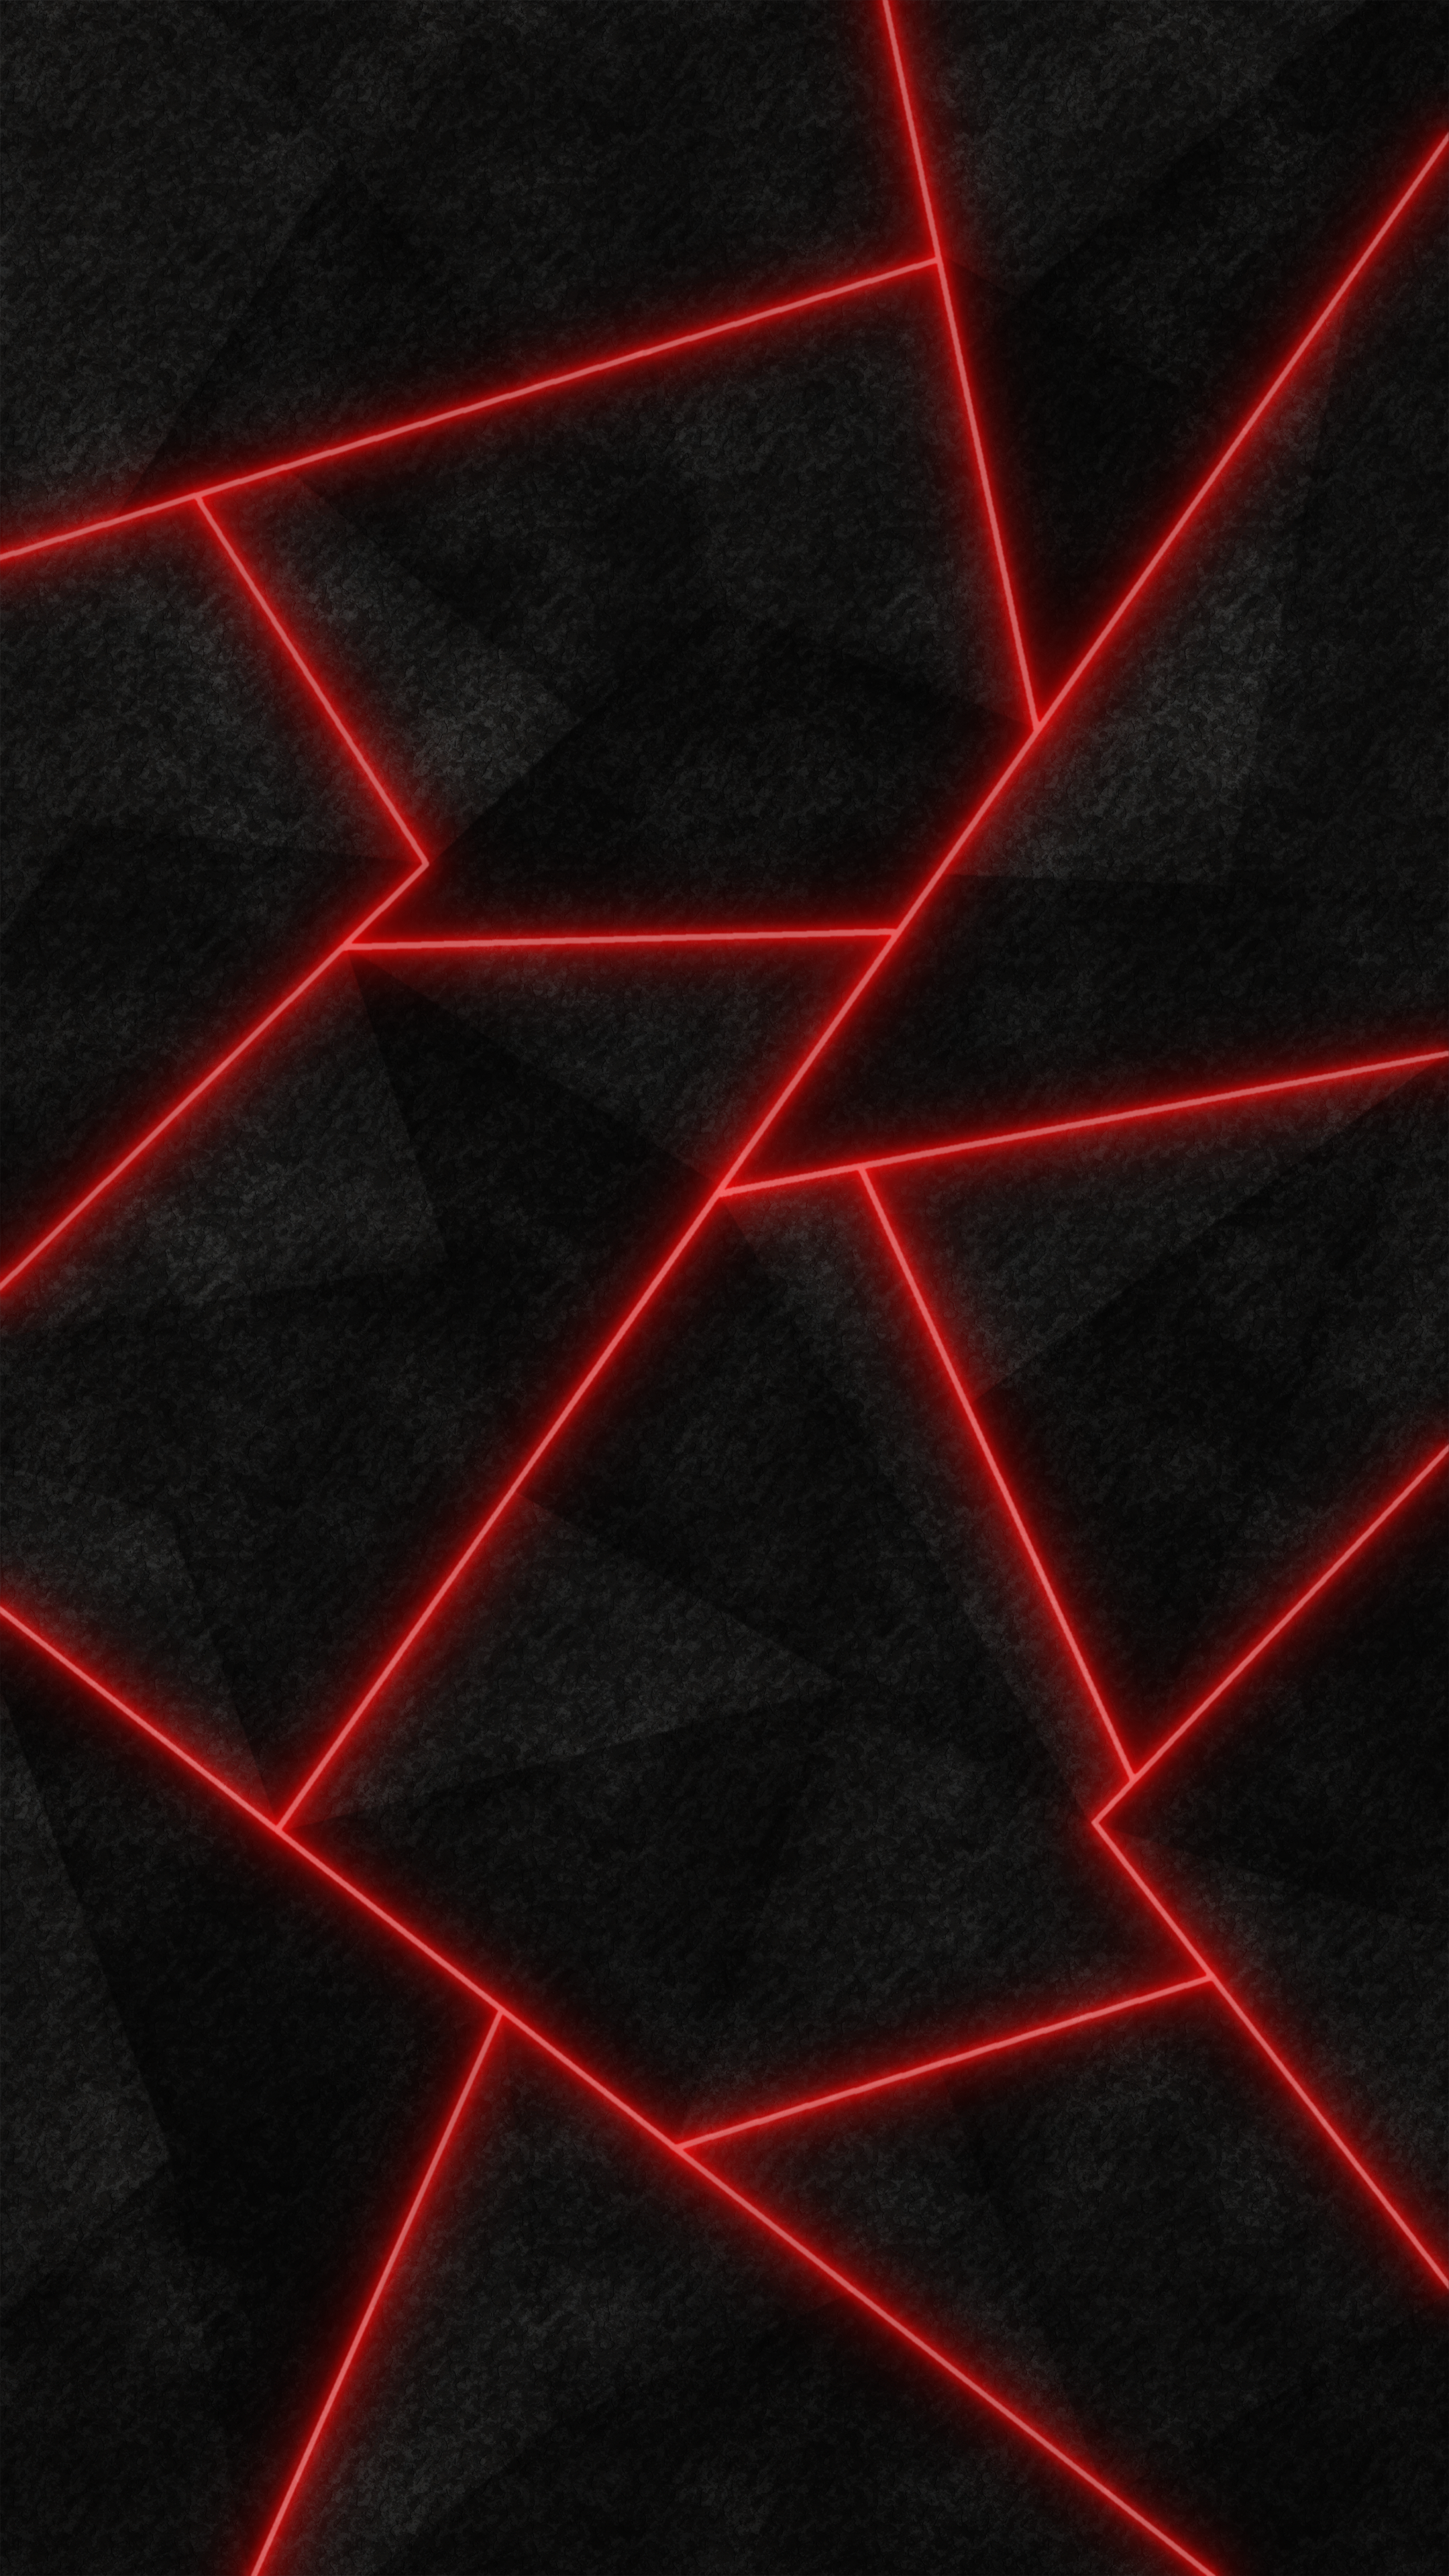 Abstract Black 2160x3840 Wallpaper Id 825159 Mobile Abyss